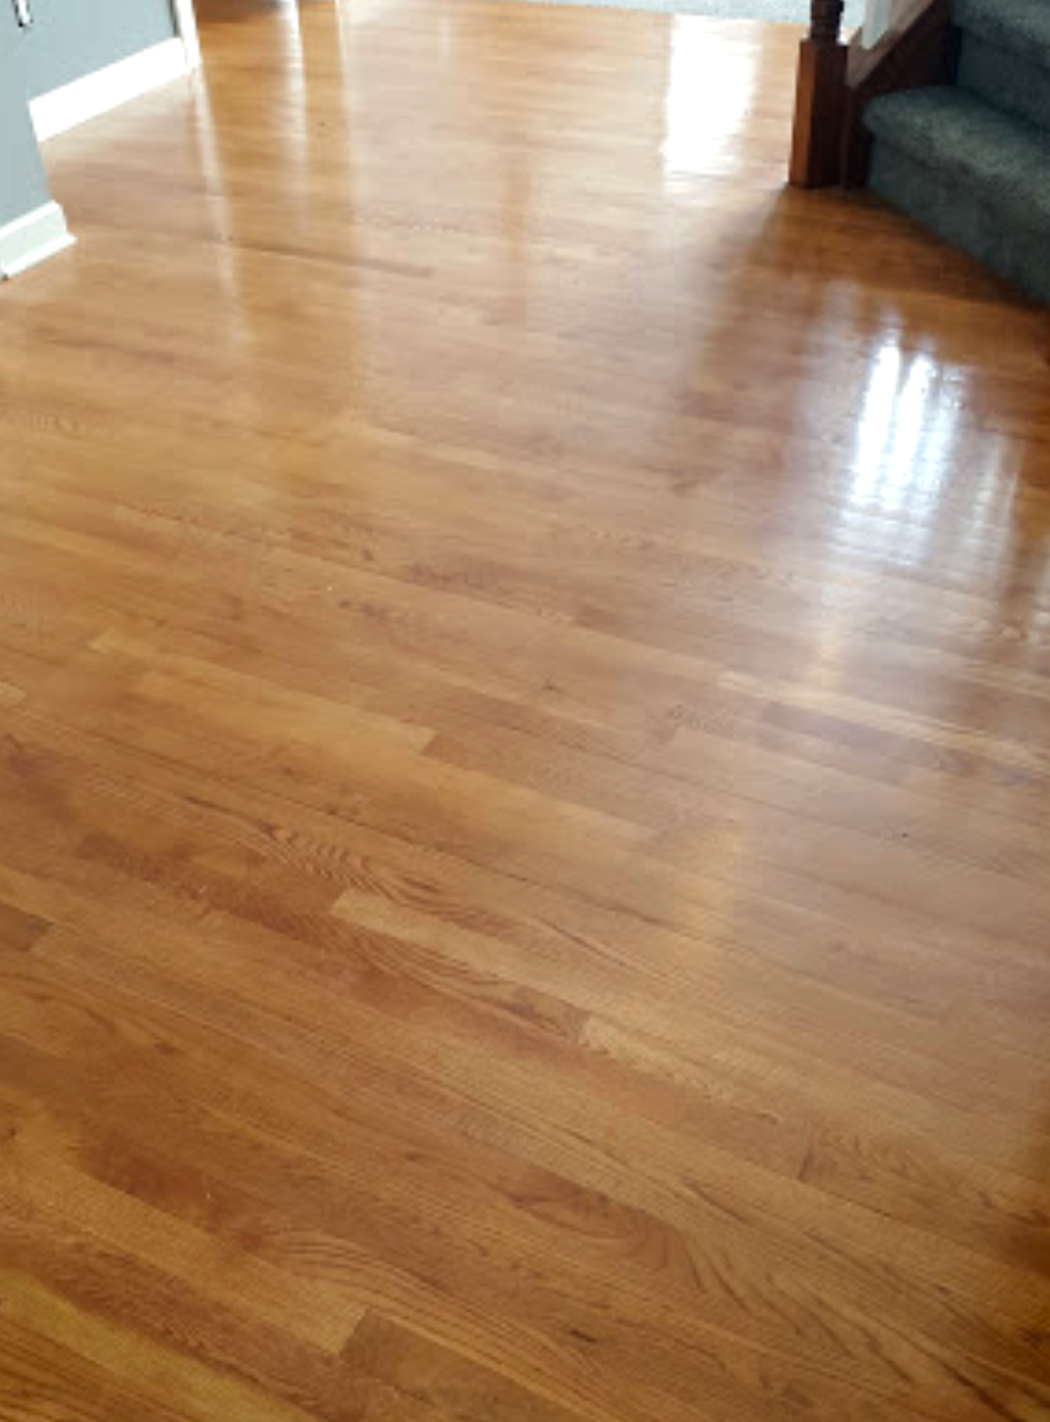 Hardwood Floor Shine!